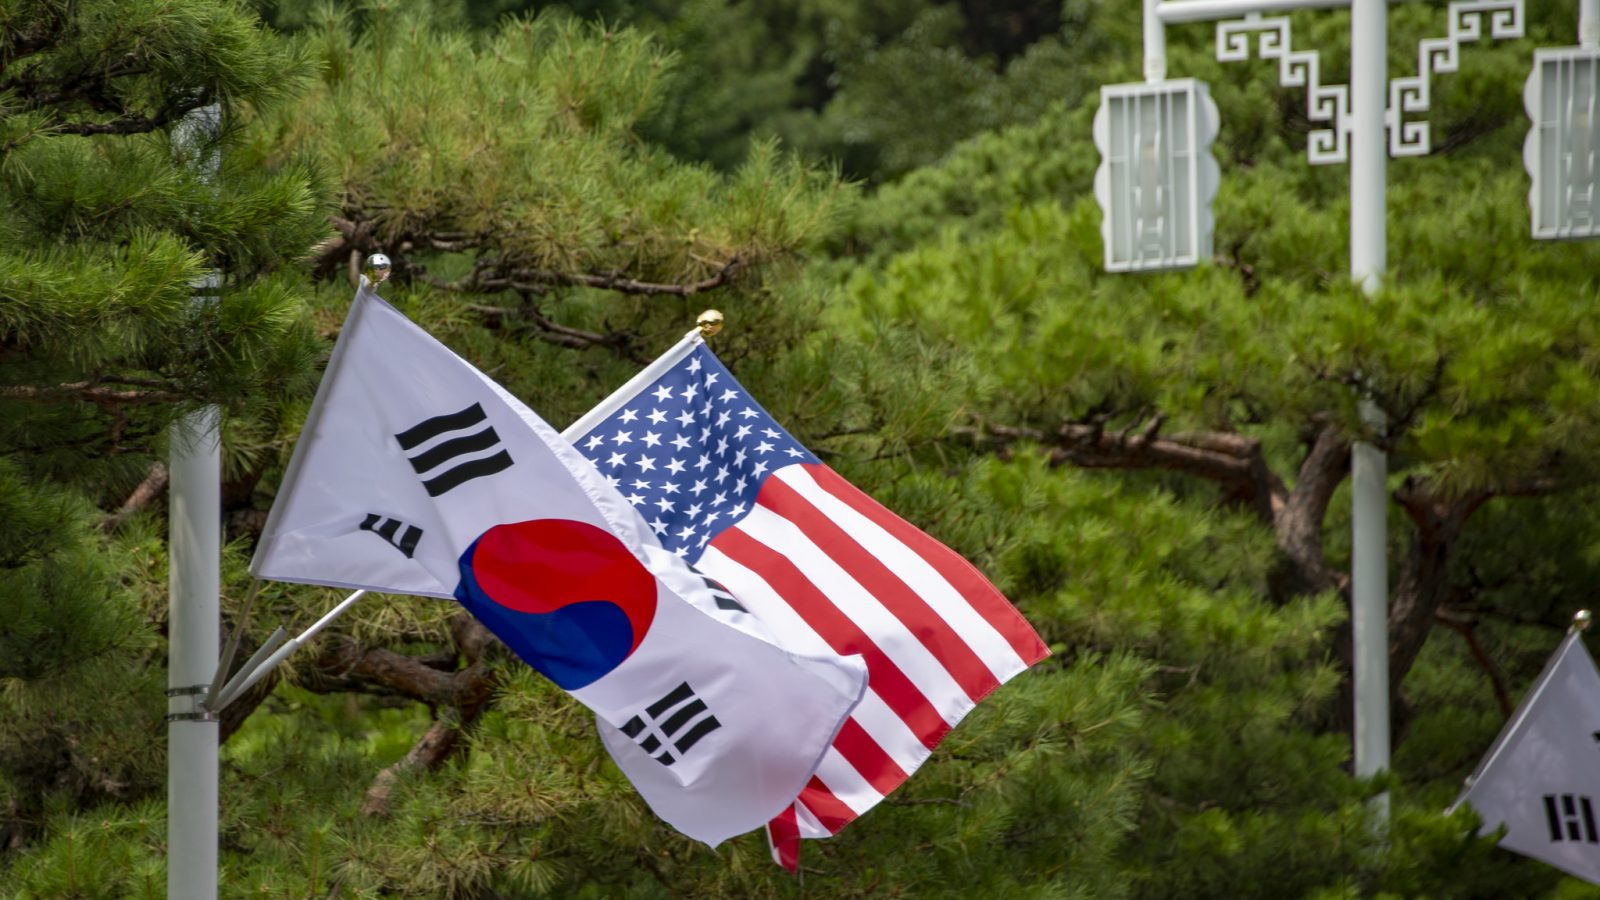 The flags of the U.S. and South Korea hang side by side